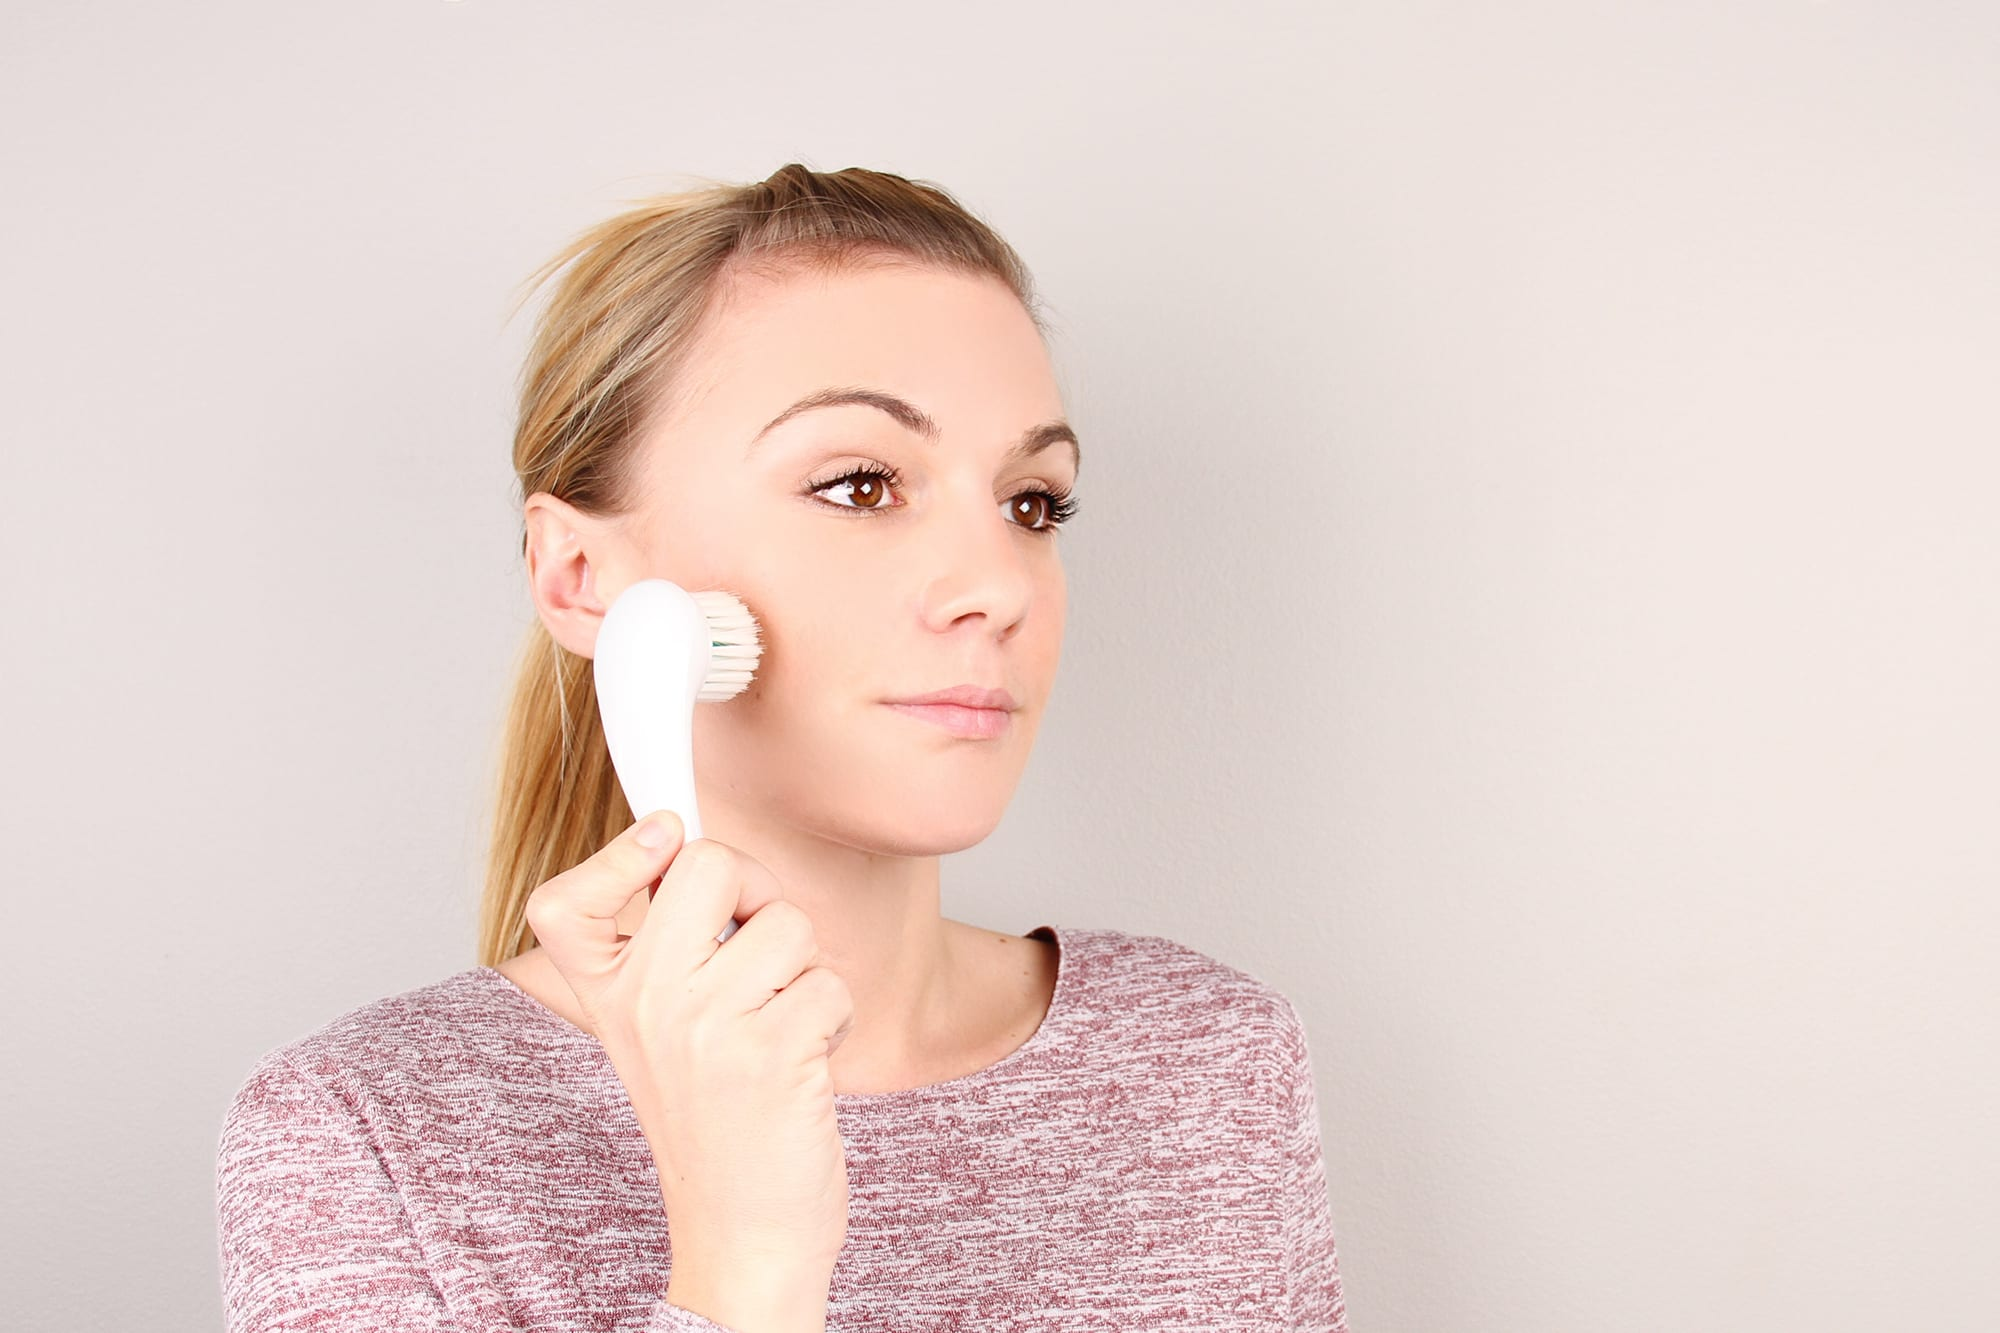 Beauty School: How To Use A Cleansing Brush